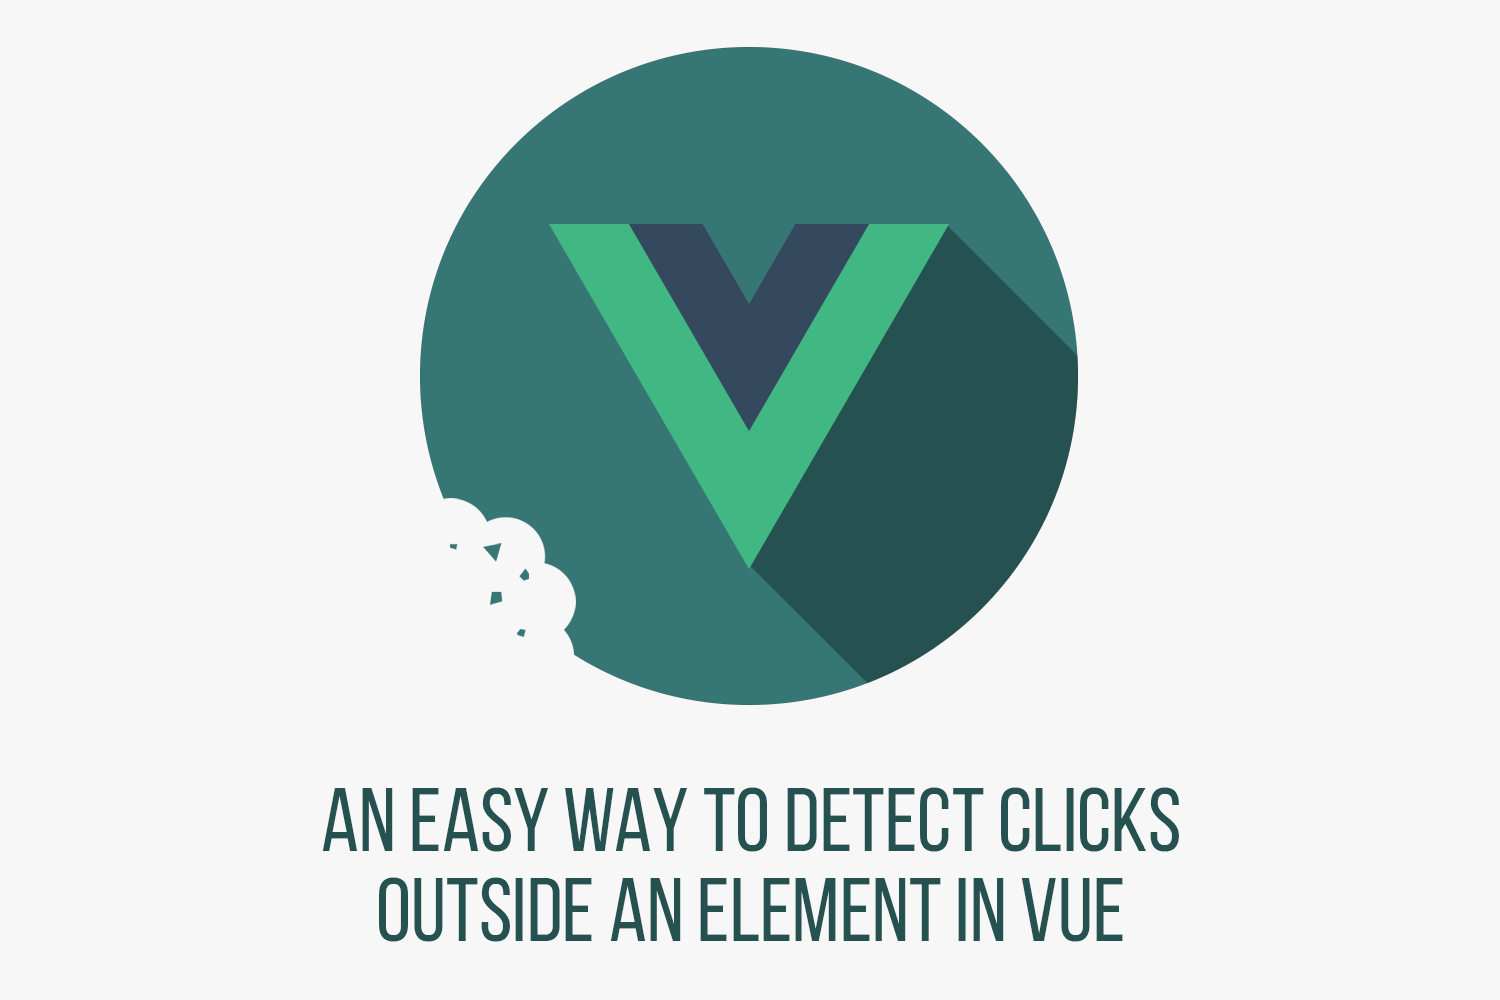 An Easy Way to Detect Clicks Outside an Element in Vue